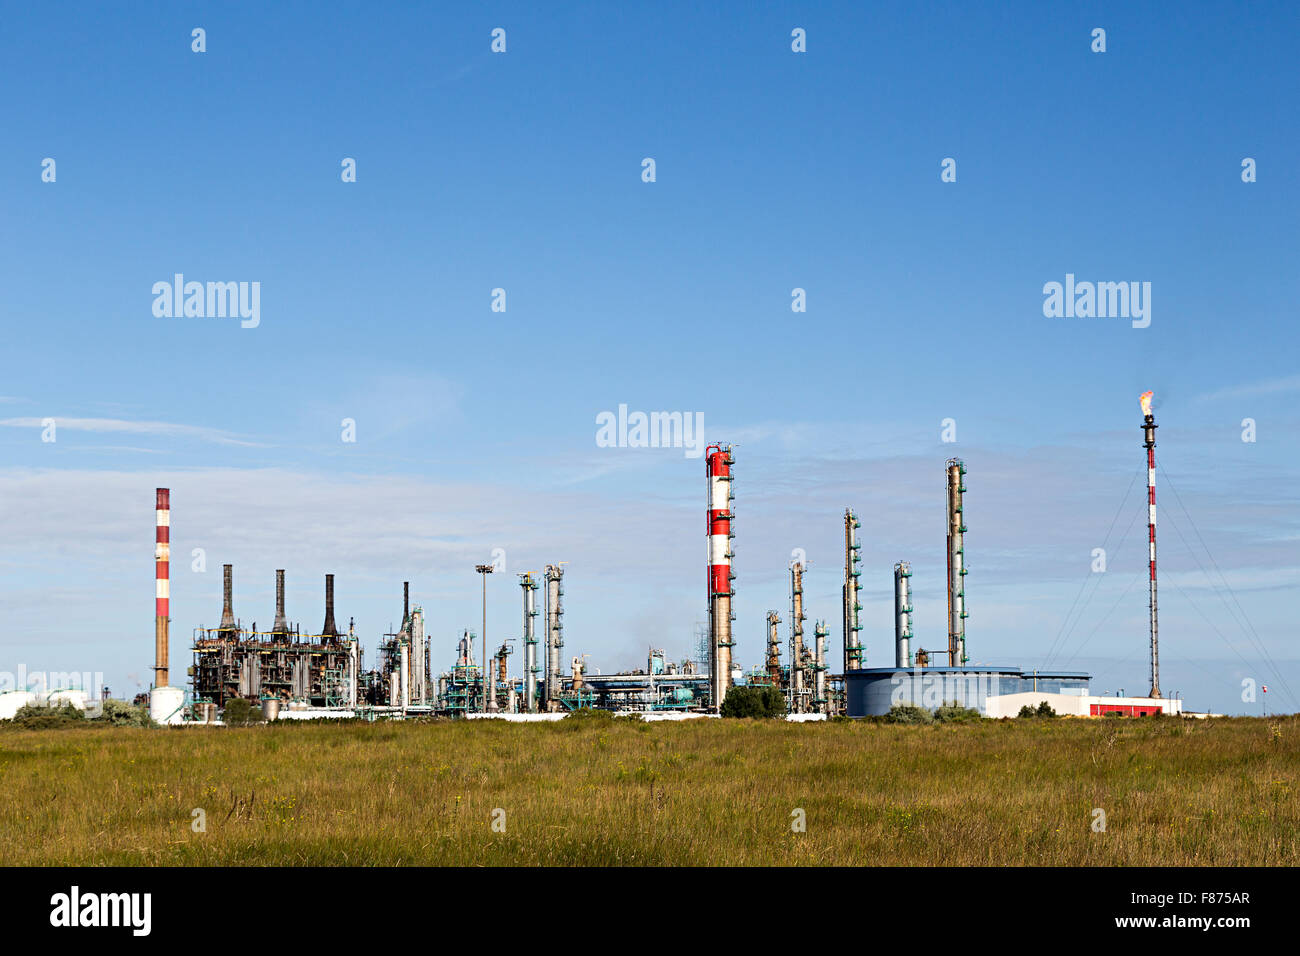 Burning off gas at industrial complex, Dunkirk - Stock Image